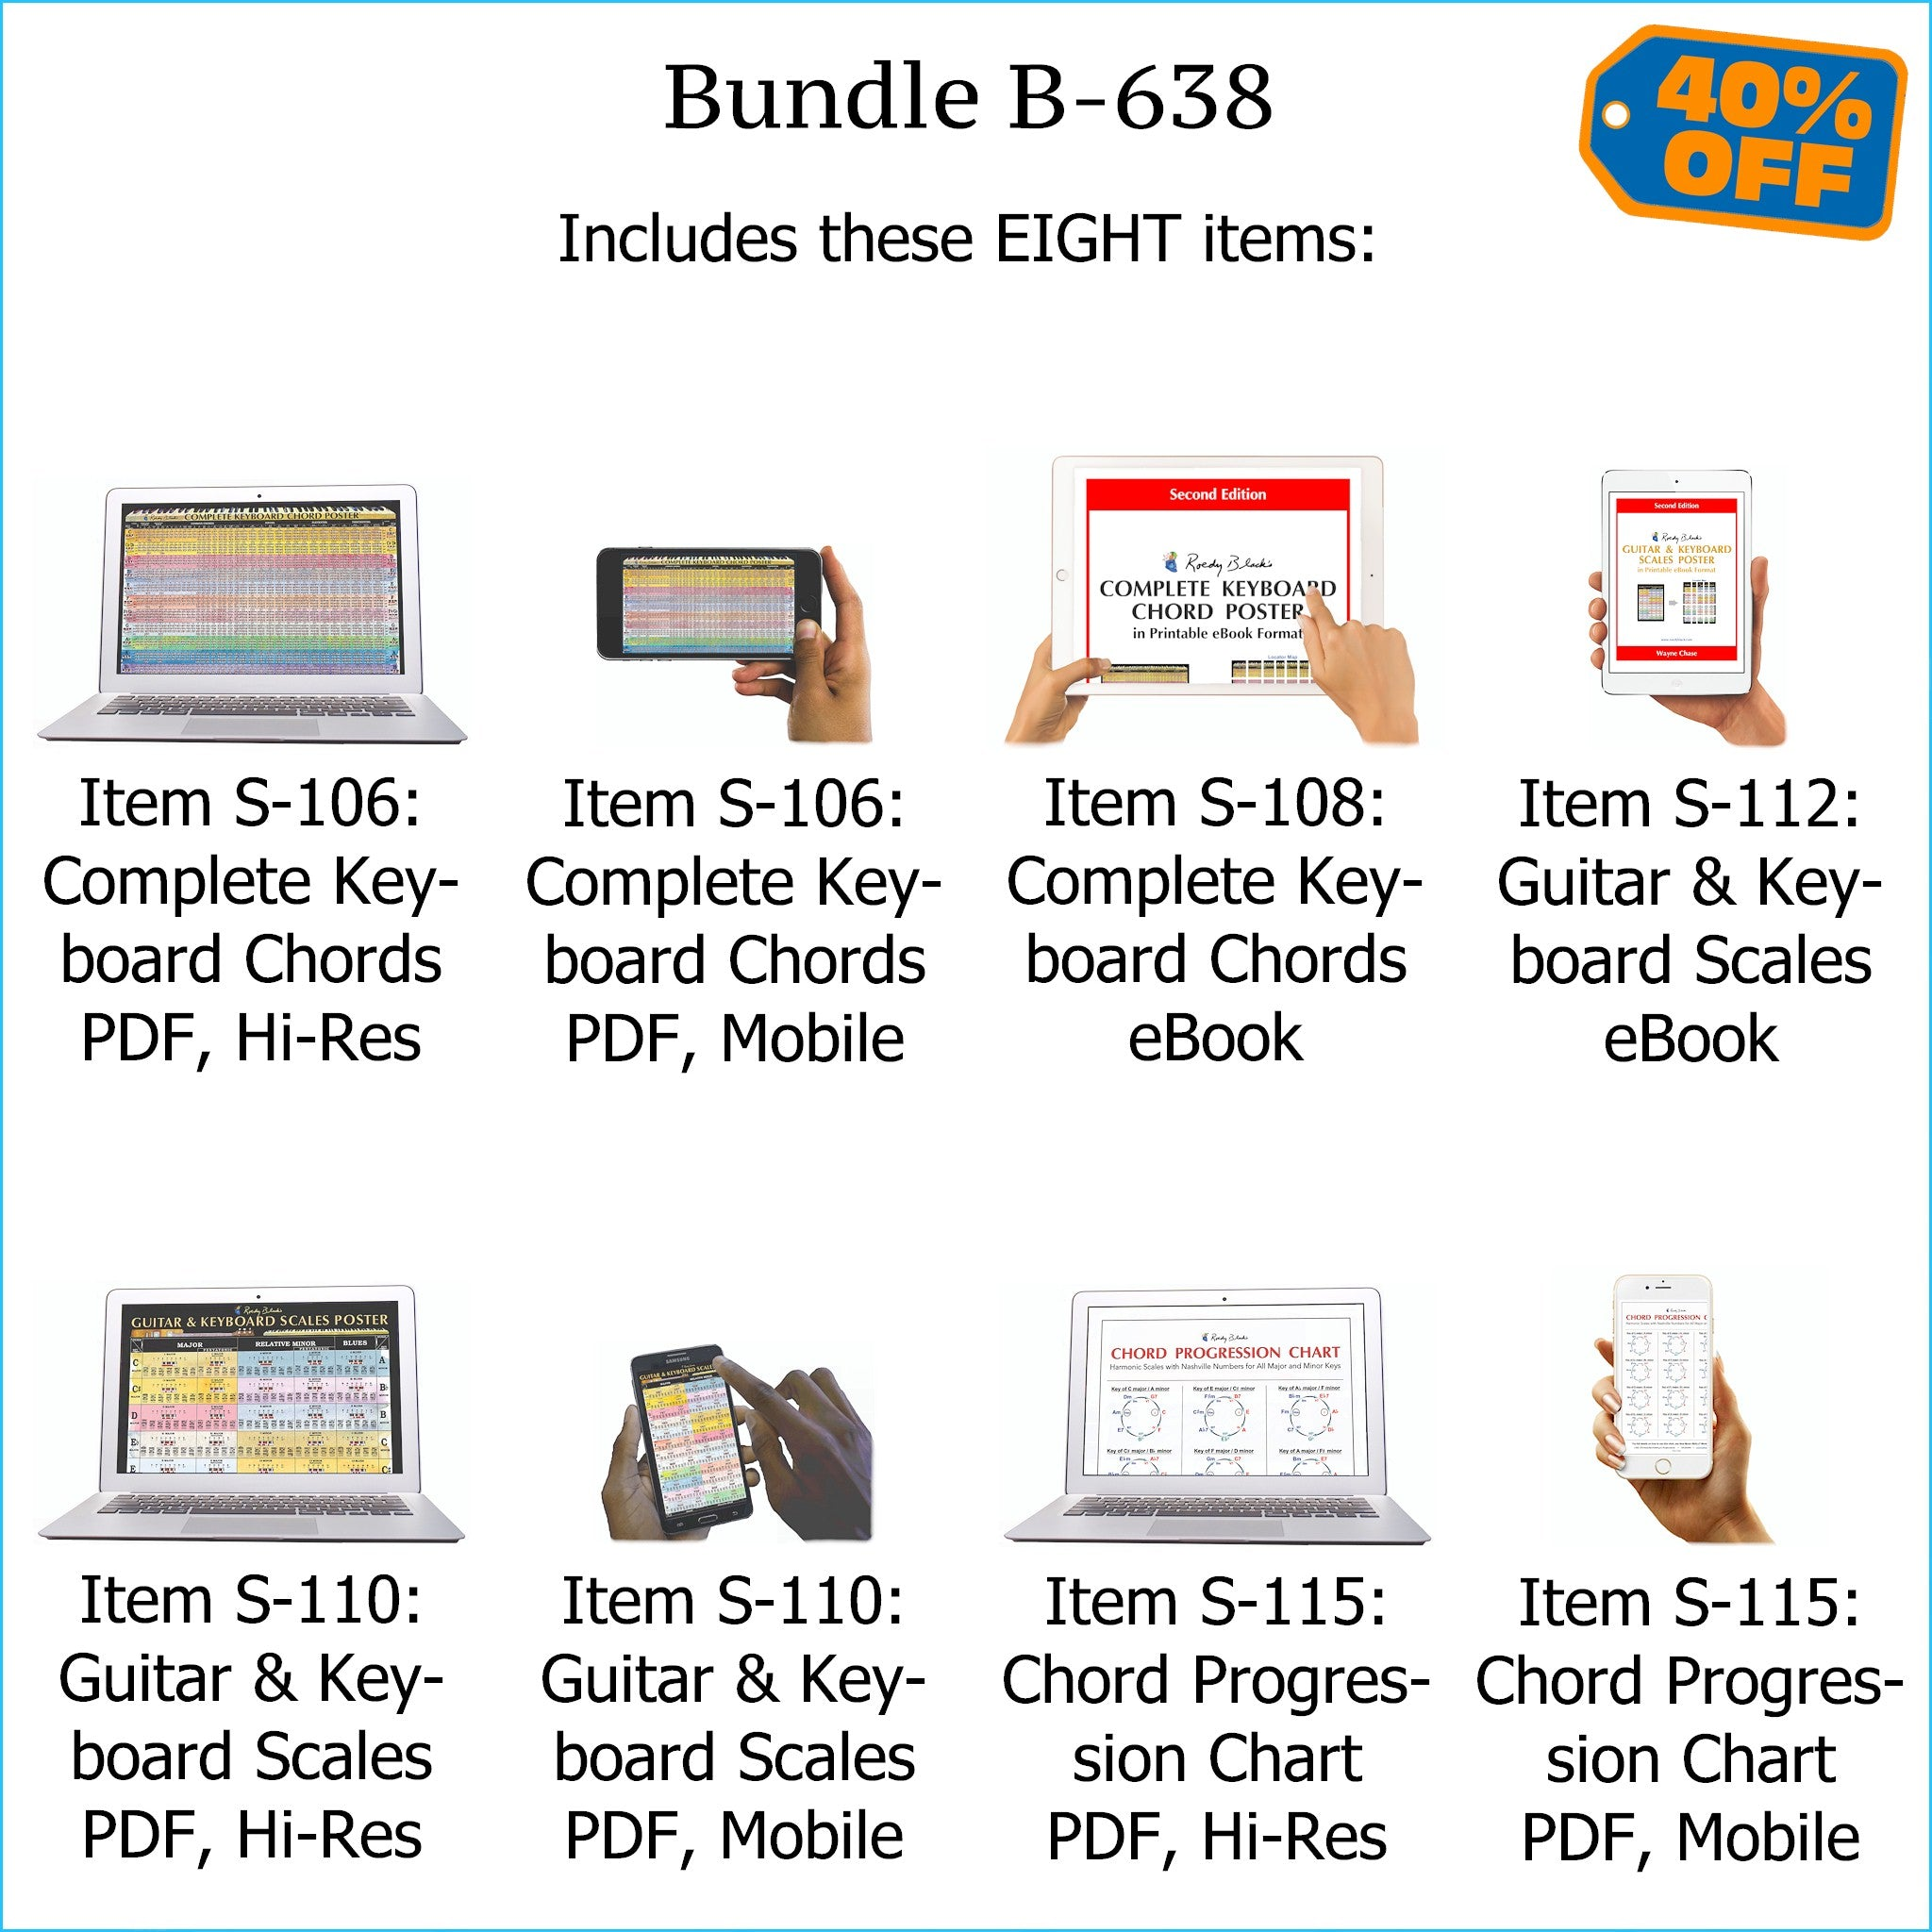 photograph regarding Scales Printable identify Deal B-638: Comprehensive Keyboard Chords, Scales, Chord Progressions - E-Posters and Printable E-Guides. Totally free Down load Safety.